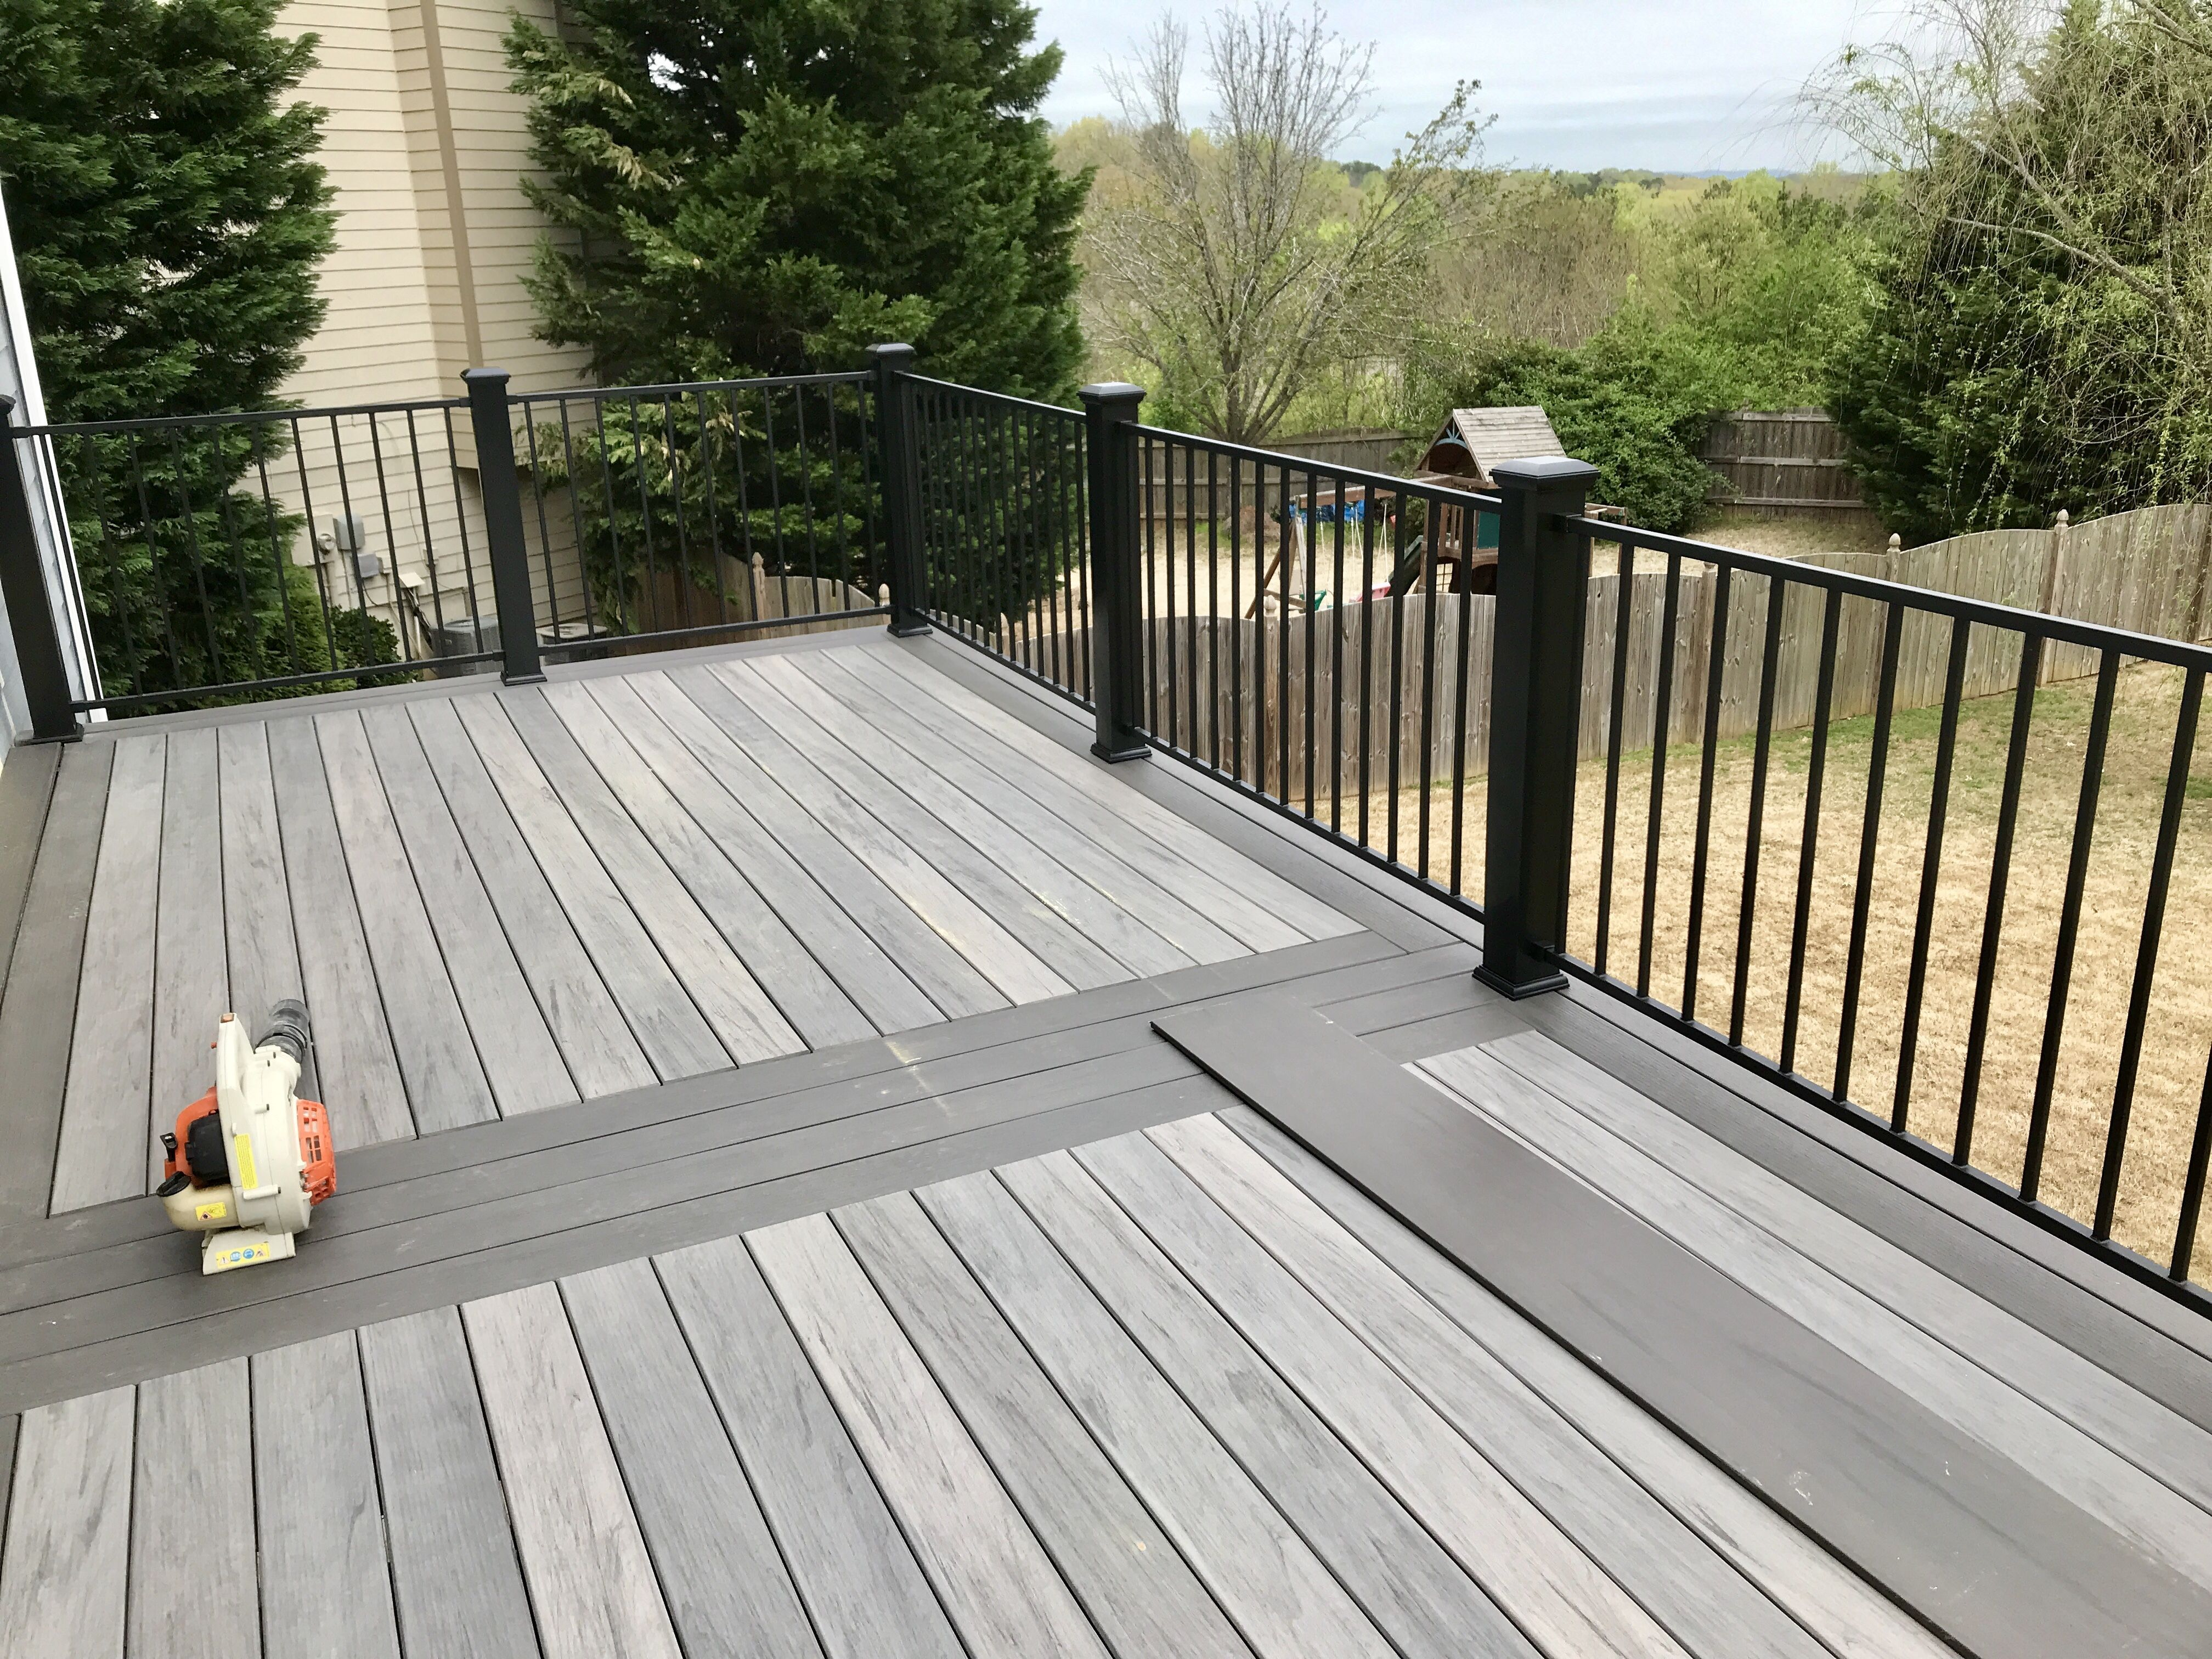 Installing Fortress Iron P26 Railing On A New Timbertech Legacy Composite Deck Railing In Black S In 2020 Deck Designs Backyard Composite Decking Small Backyard Decks